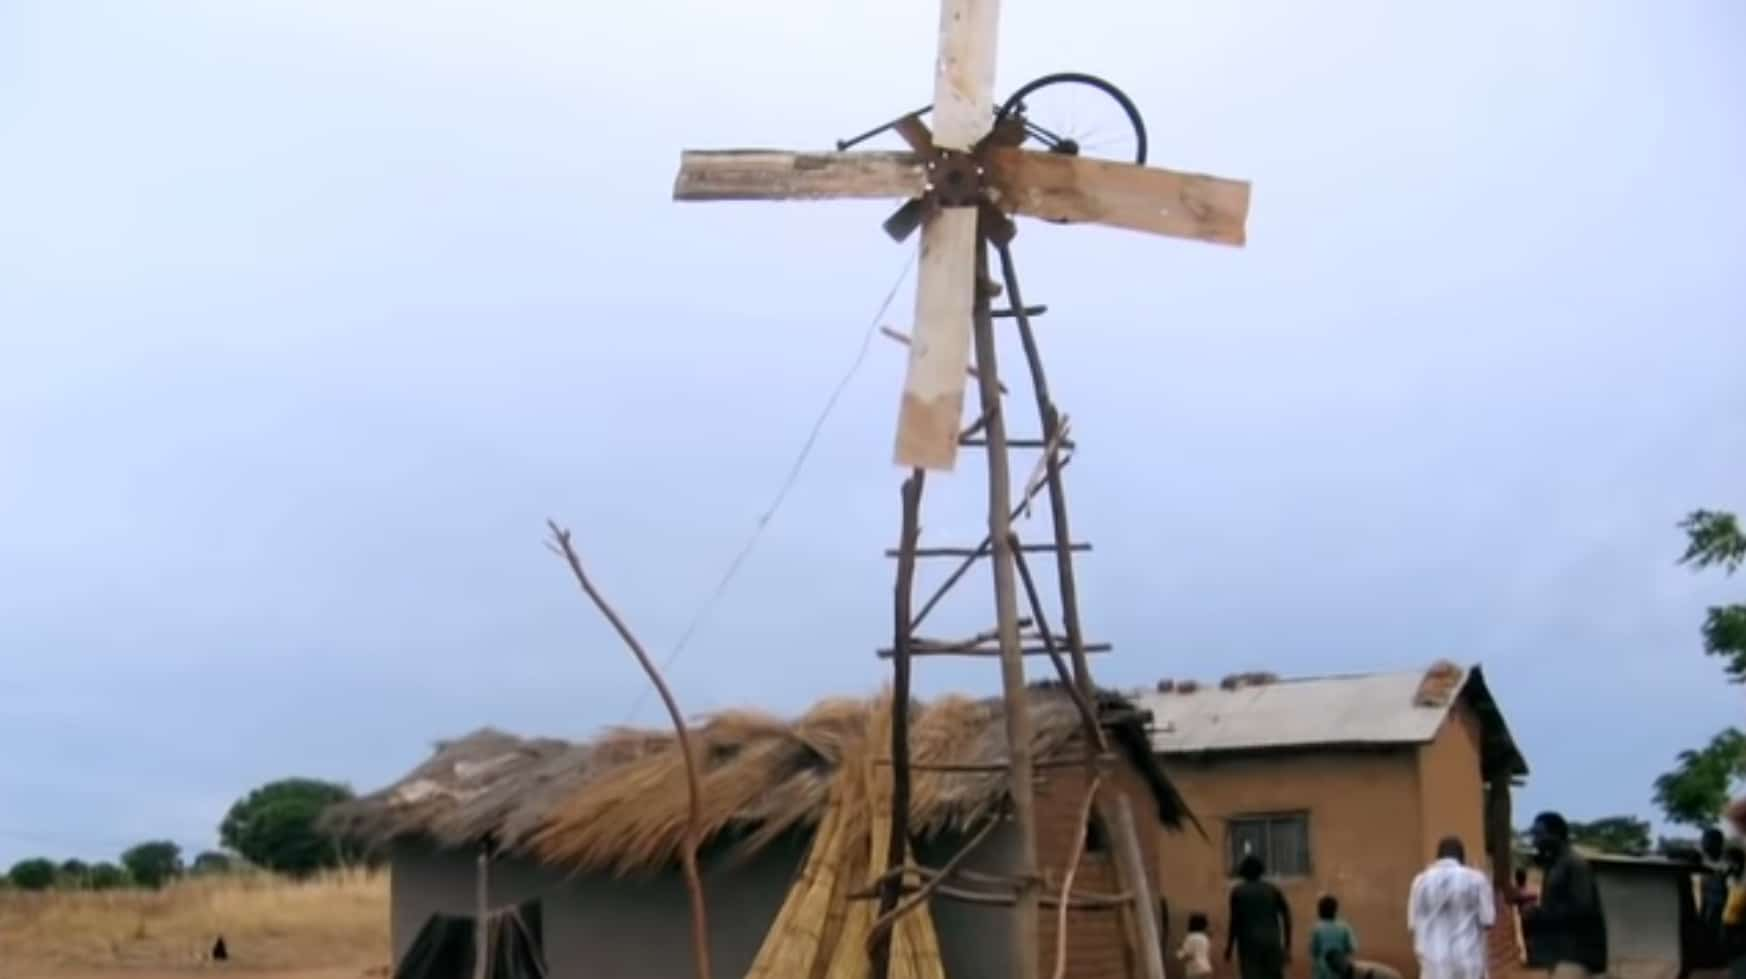 William Kamkwamba's first windmill